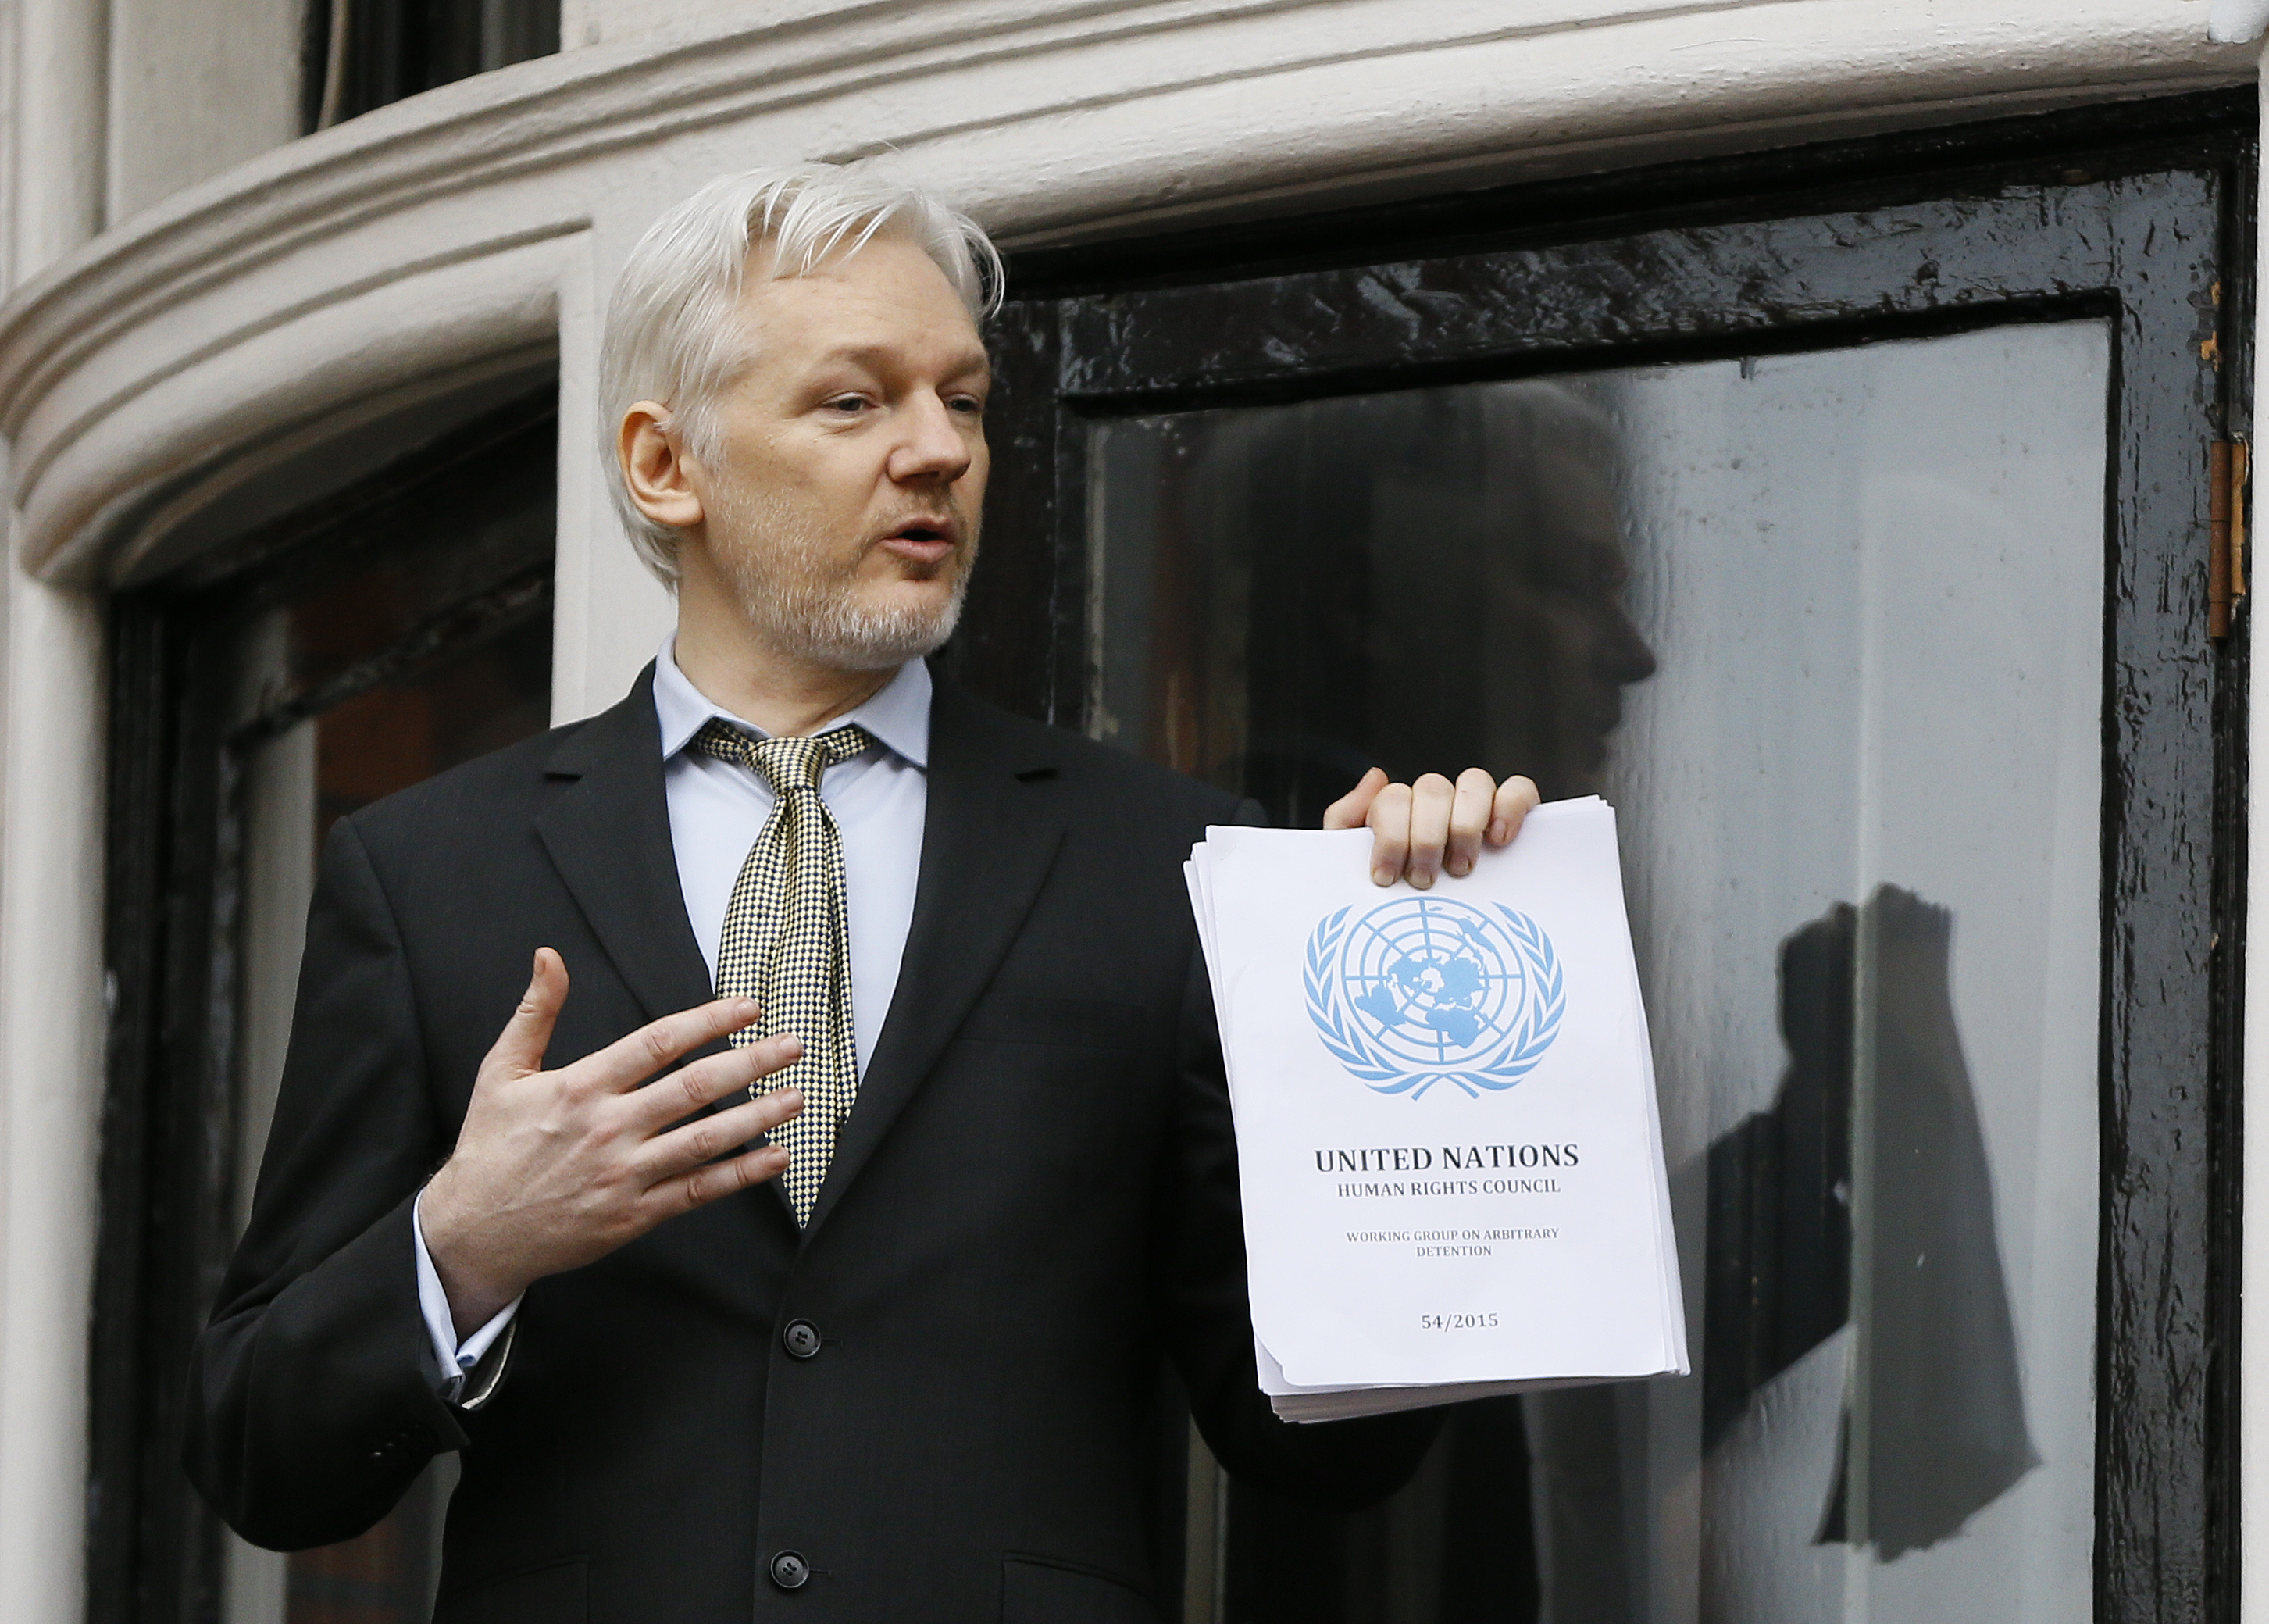 WikiLeaks' Julian Assange Will Release 'Significant' Clinton Documents Before Election